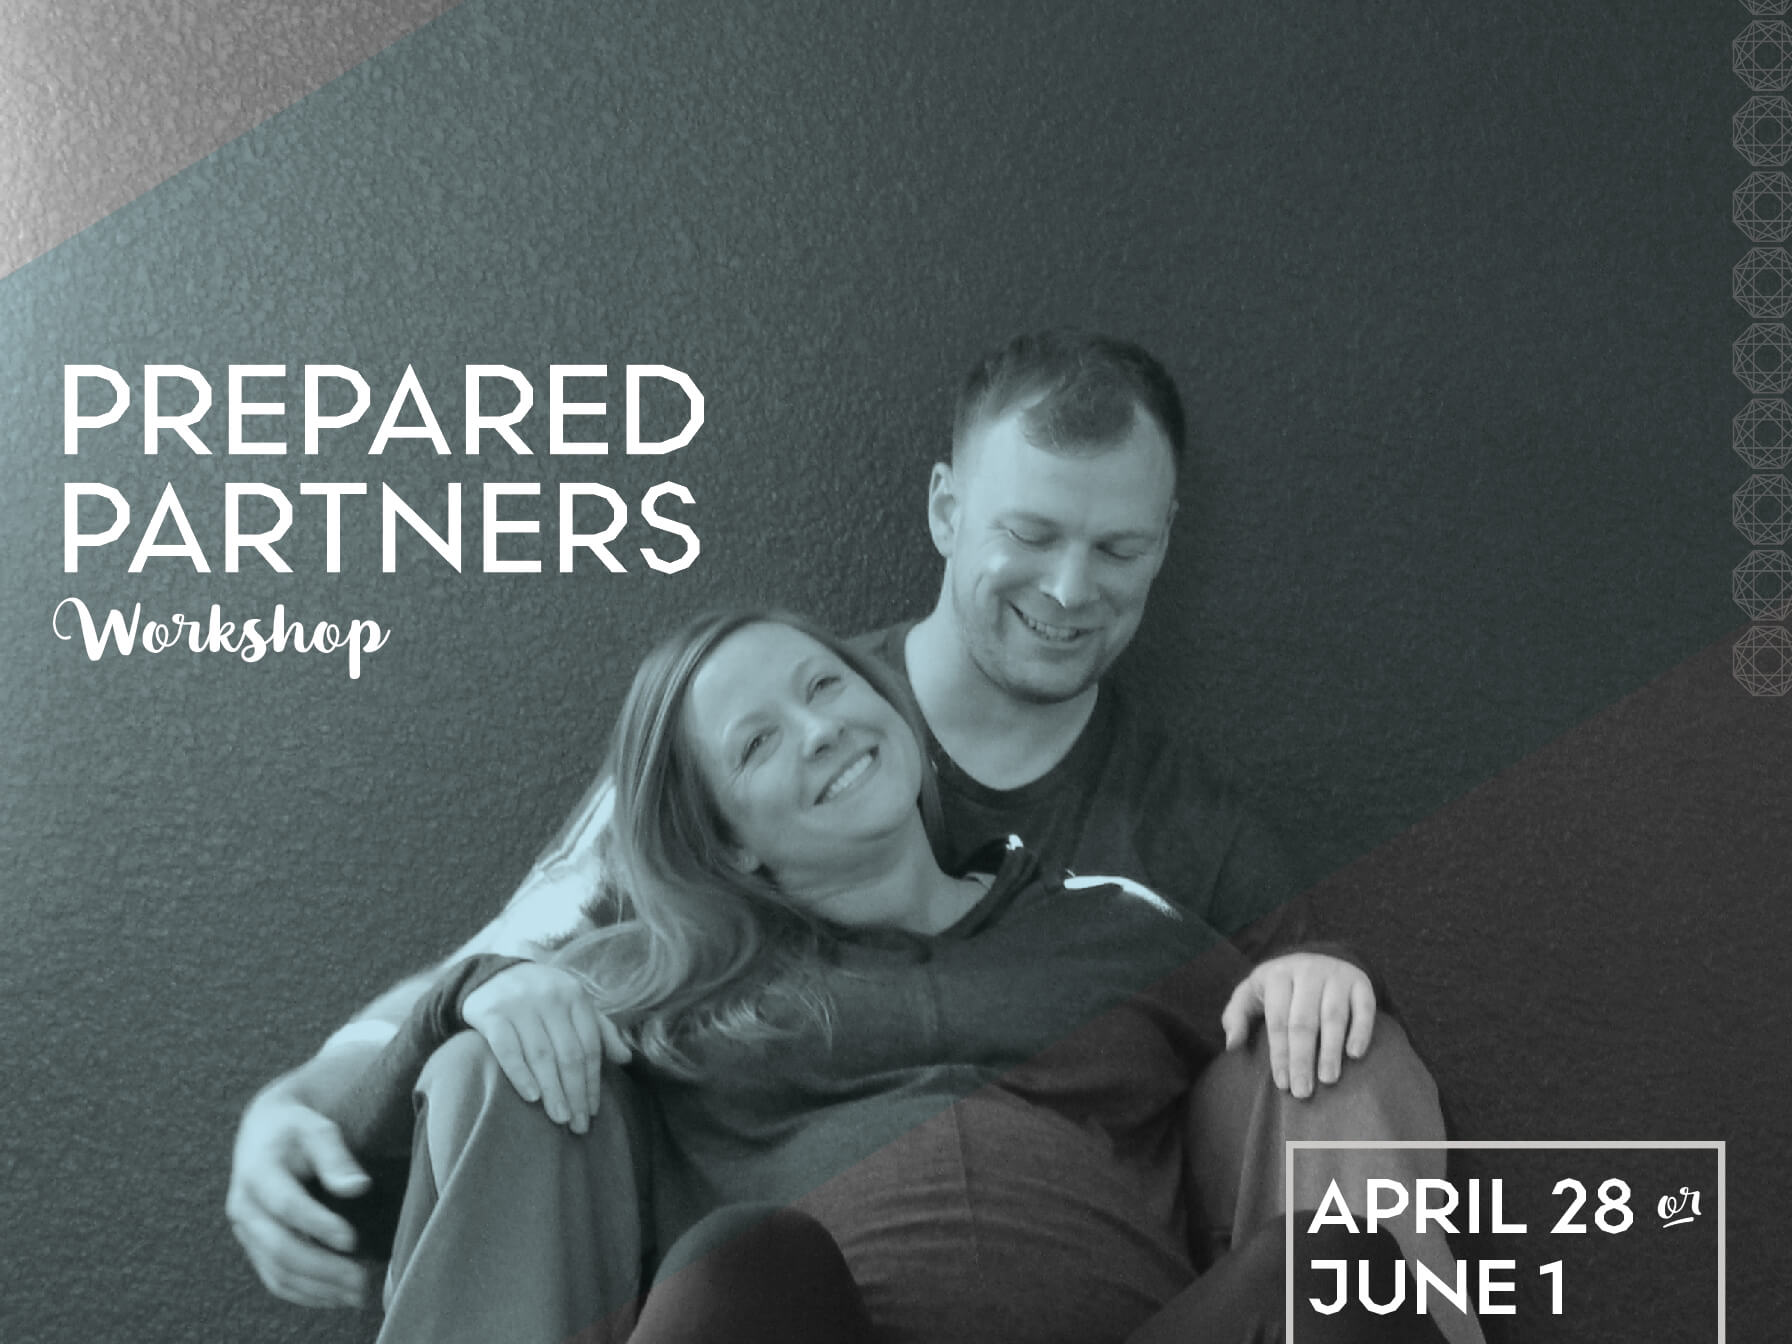 Prepared Partners Workshop